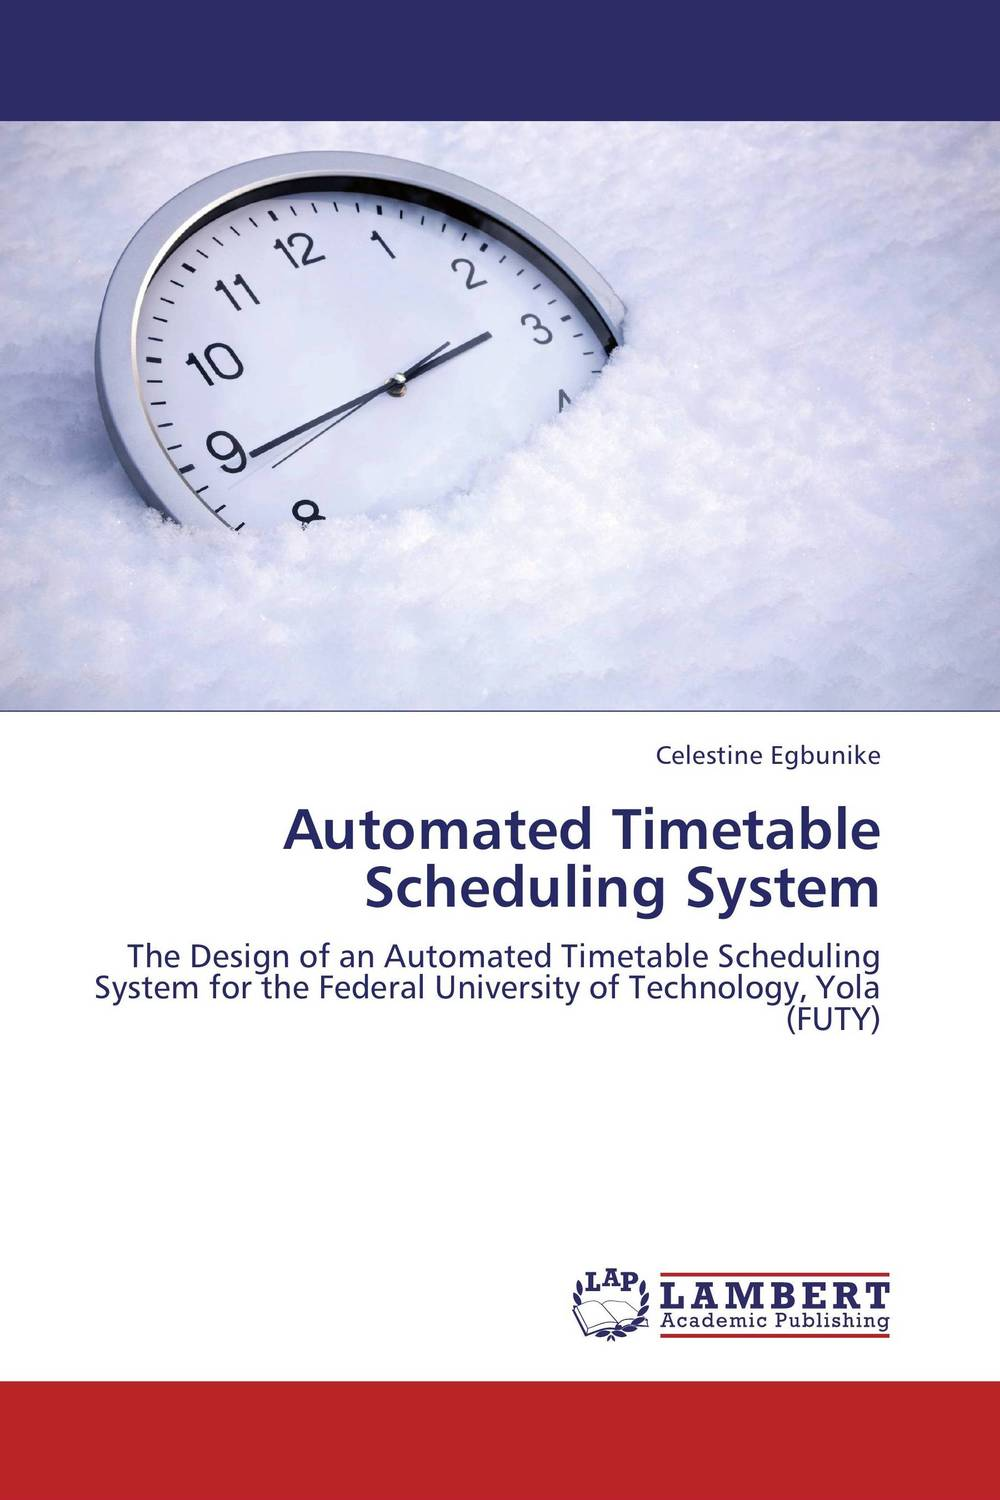 Automated Timetable Scheduling System